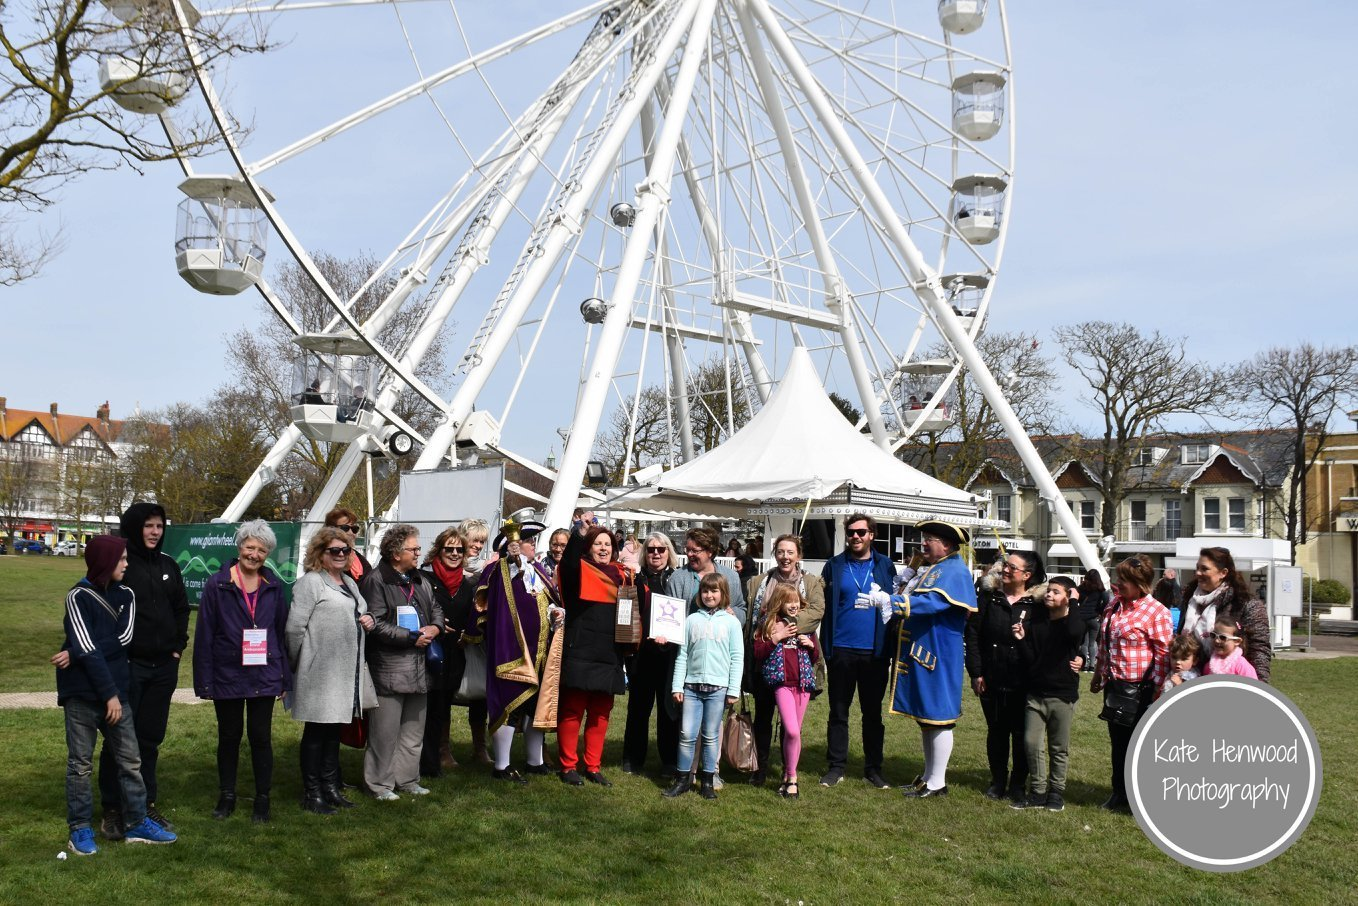 Flying high with the Worthing mumpreneurs